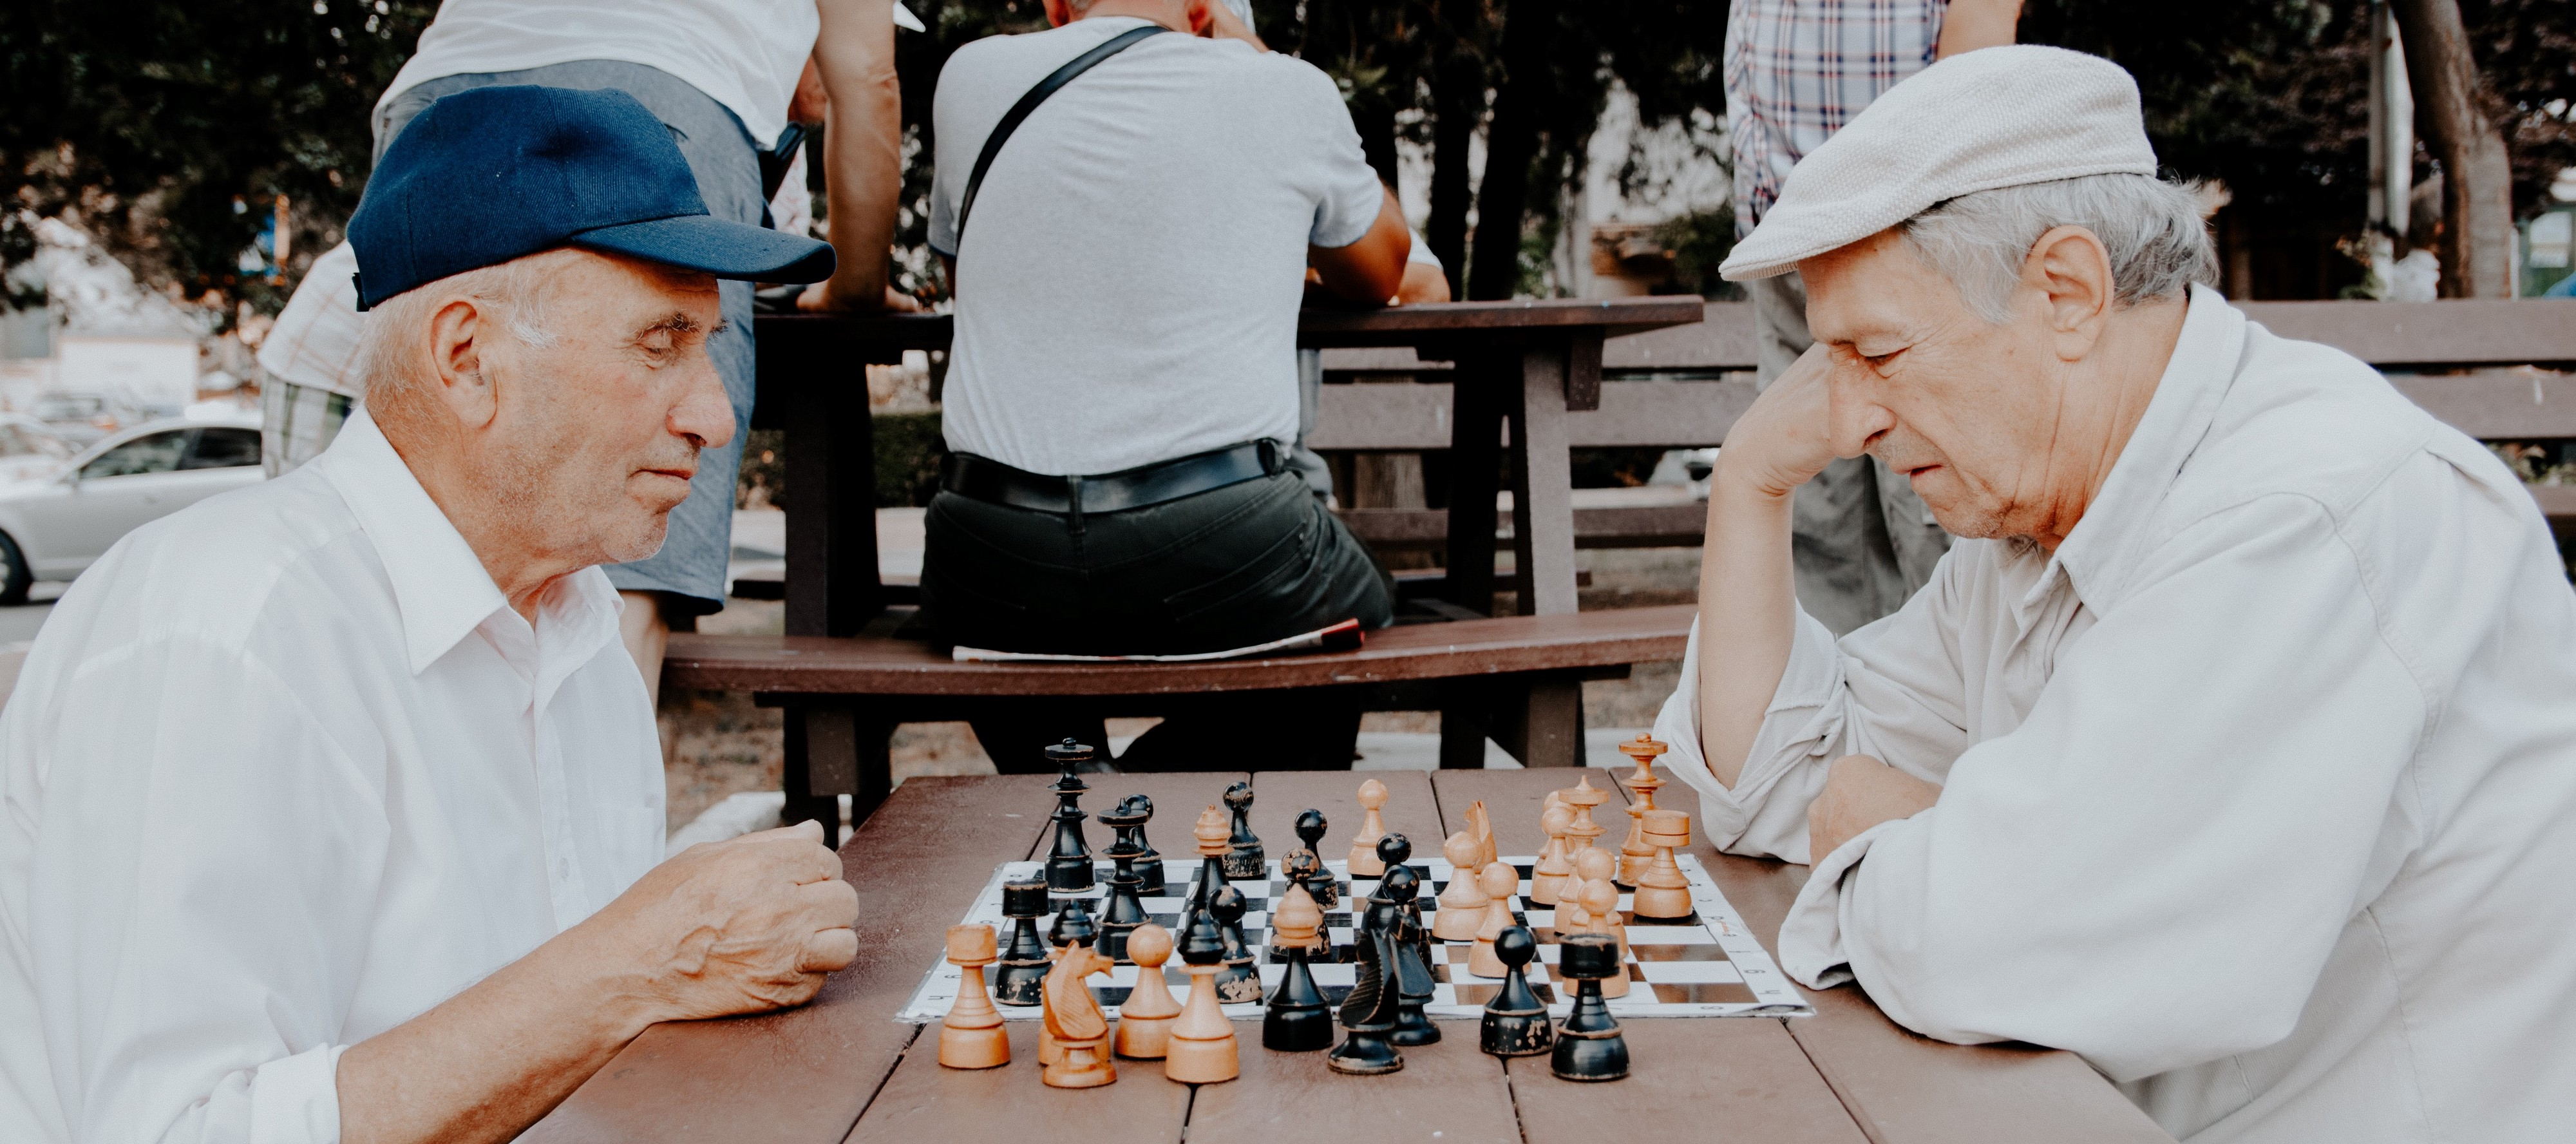 Understanding probabilities like when playing chess